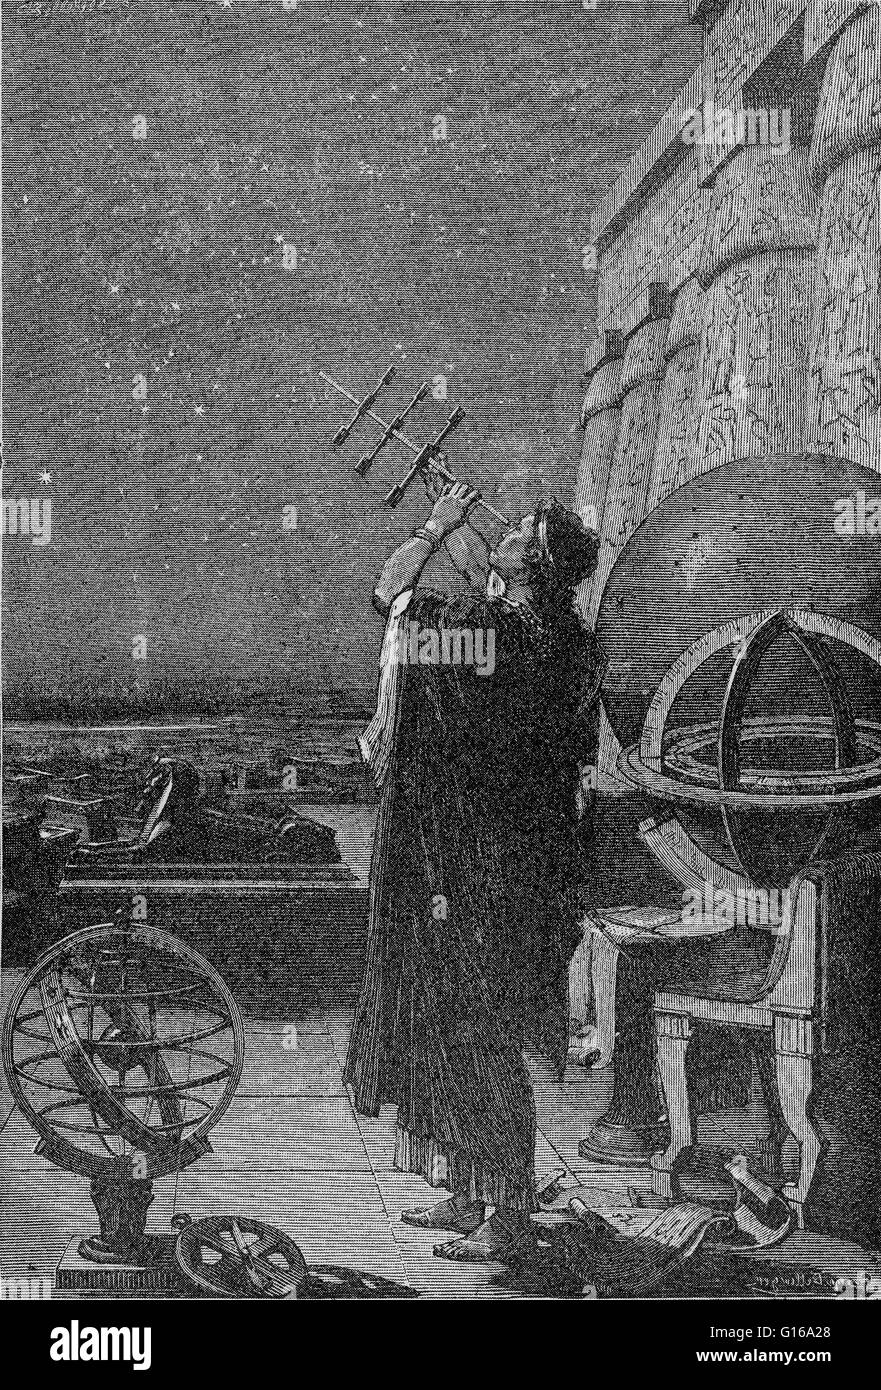 Alexandria observatory, 2nd century BC - 2nd century AD. Astronomer using a pre-telescopic sighting instrument, - Stock Image